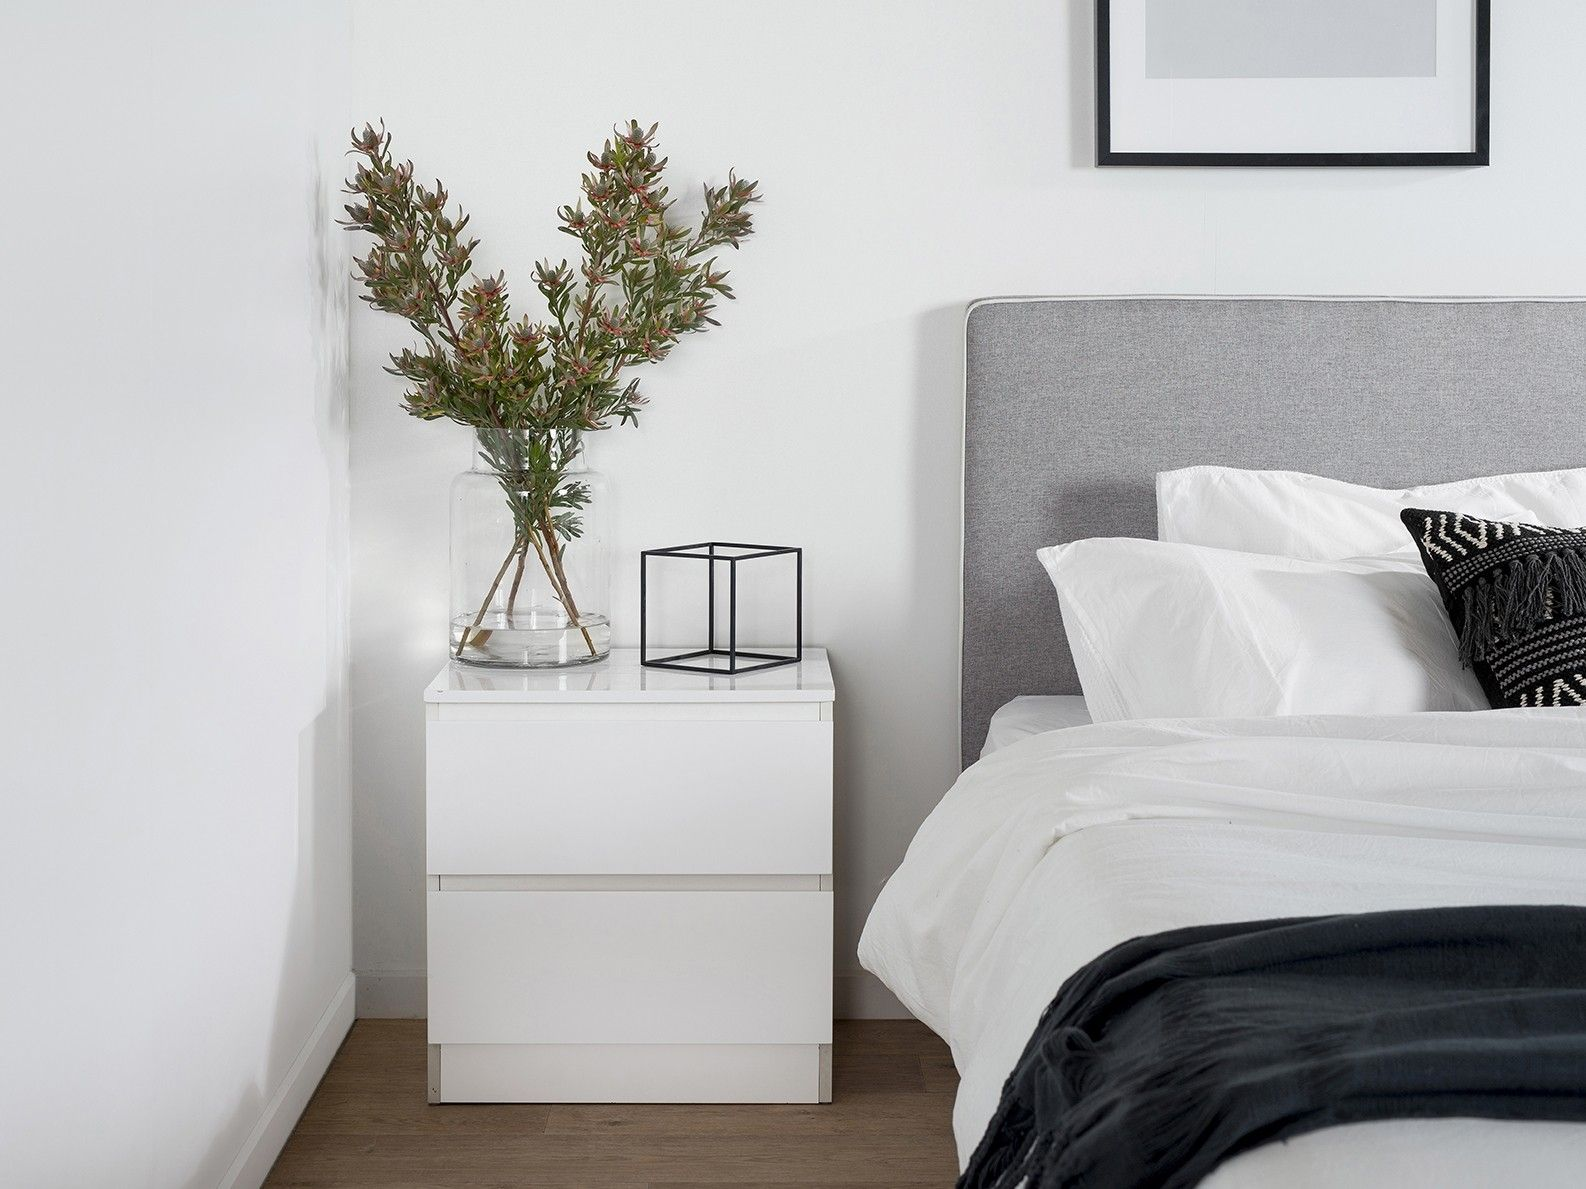 Pin by Tova Gordon on The Kids Room Modern bedside table